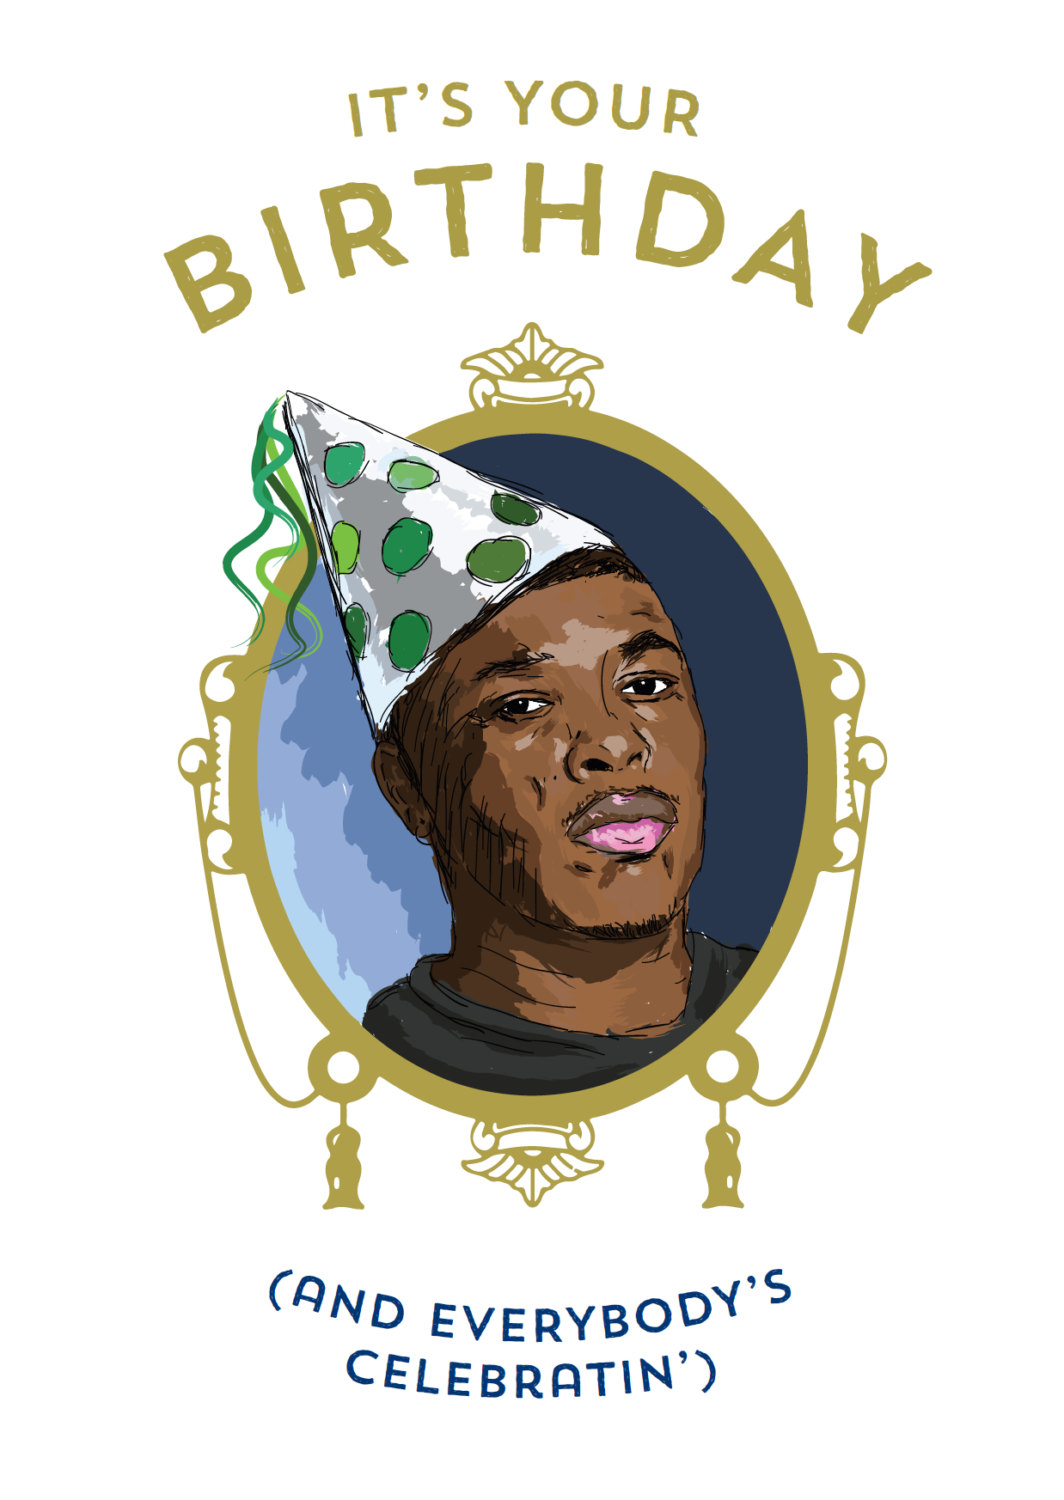 Dr. Dre Birthday Card 'it's your birthday and by WakaFlockaLuke.